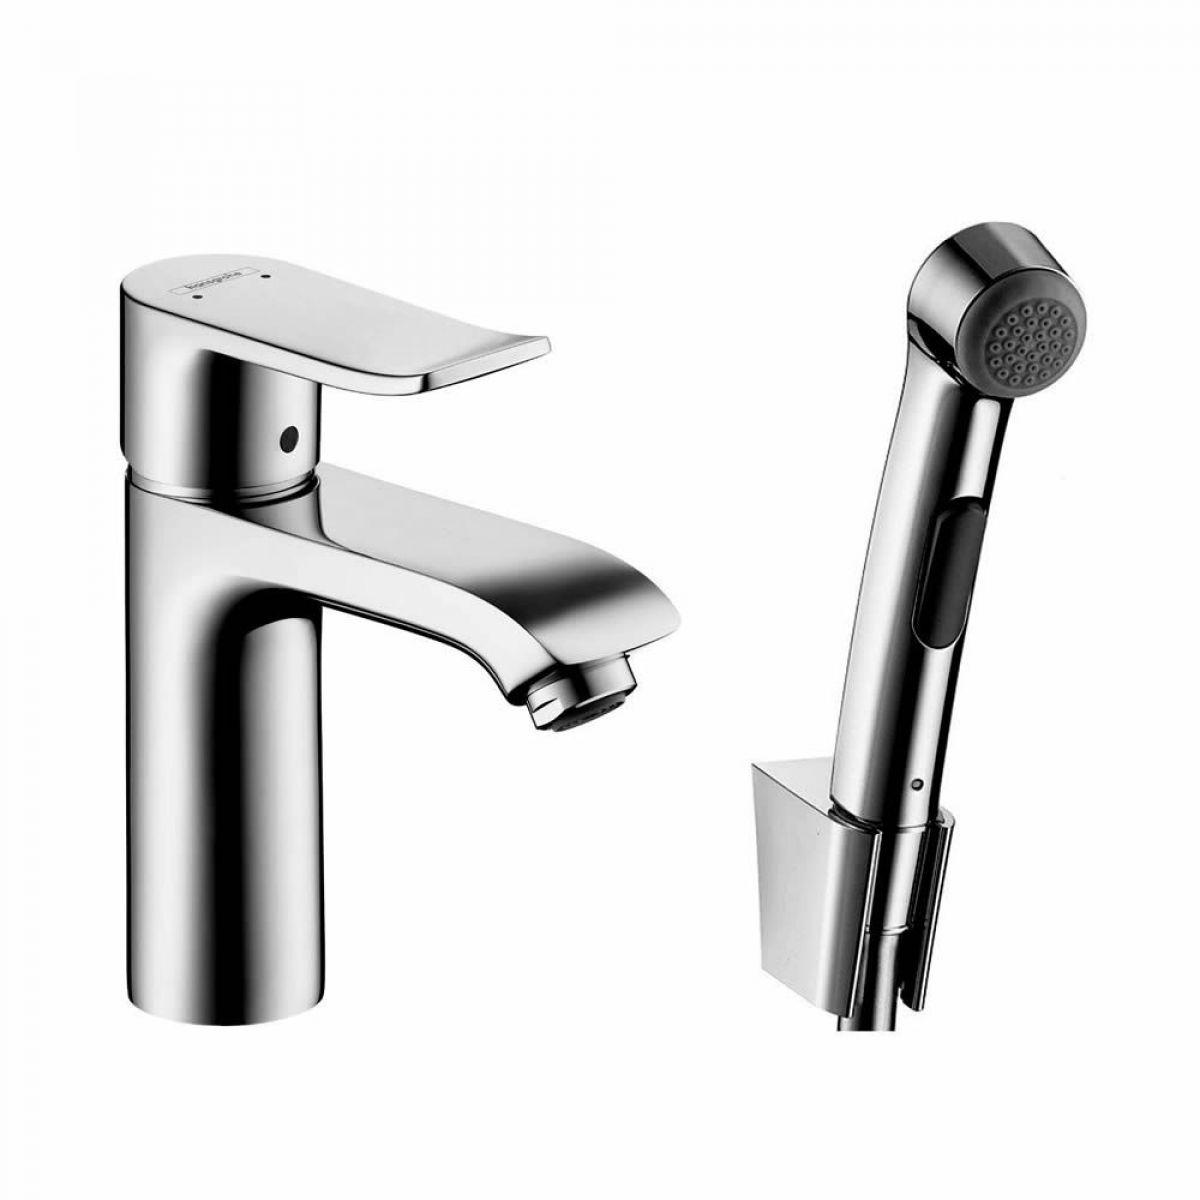 hansgrohe metris bidet mixer tap with 1jet hand shower uk bathrooms. Black Bedroom Furniture Sets. Home Design Ideas